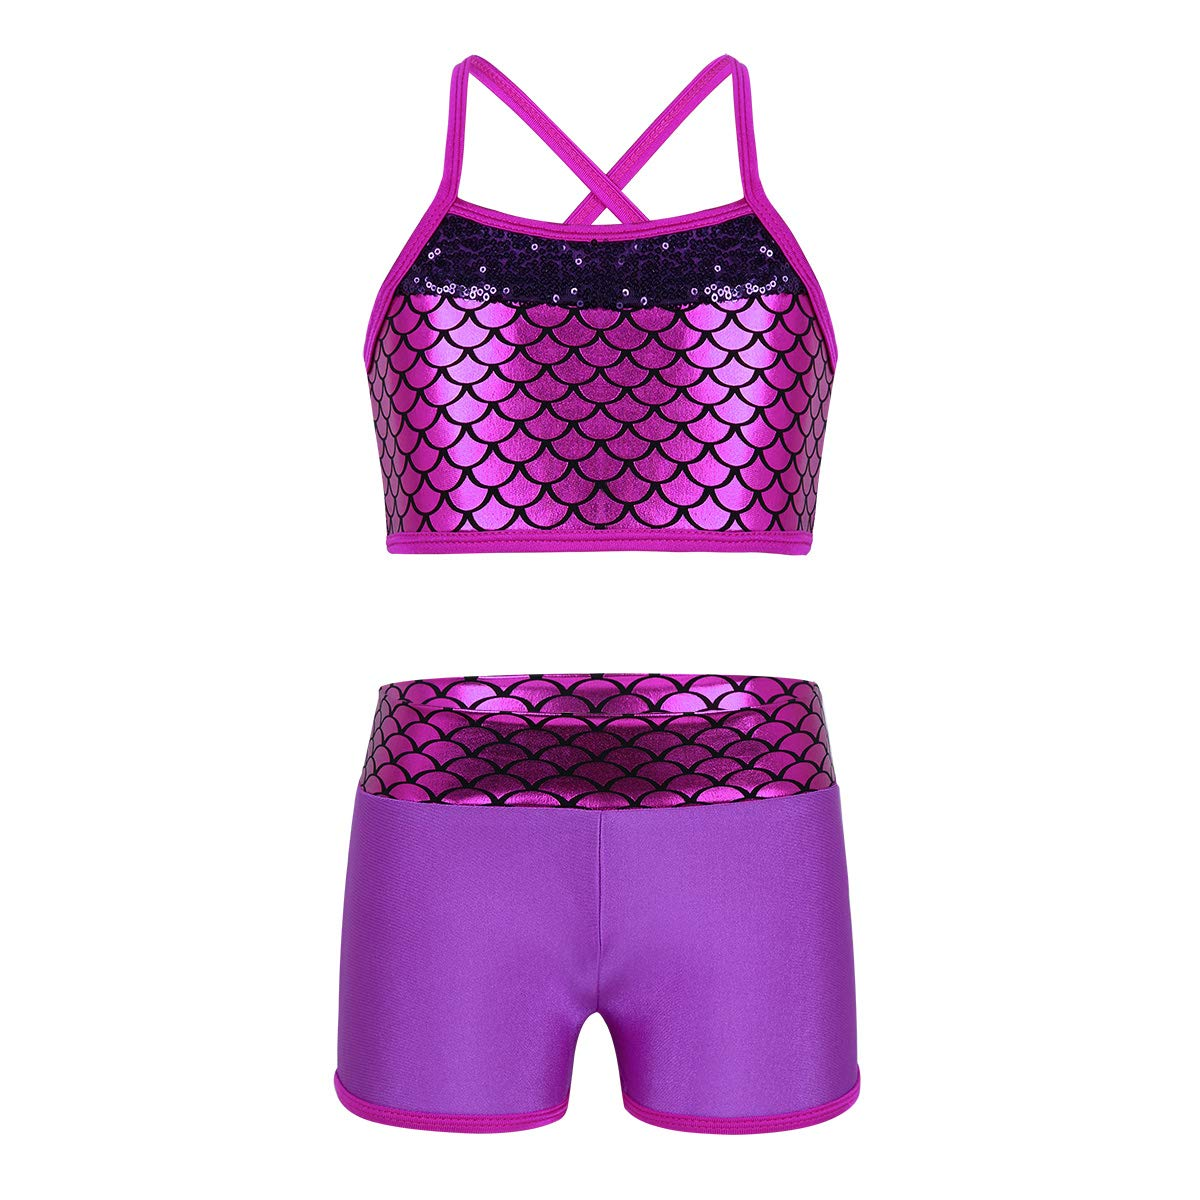 iiniim Kids Girls Two Piece Tankini Bathing Suit Sports Gymmnastics Dancing Swimming Outfit Crop Top with Shorts Set